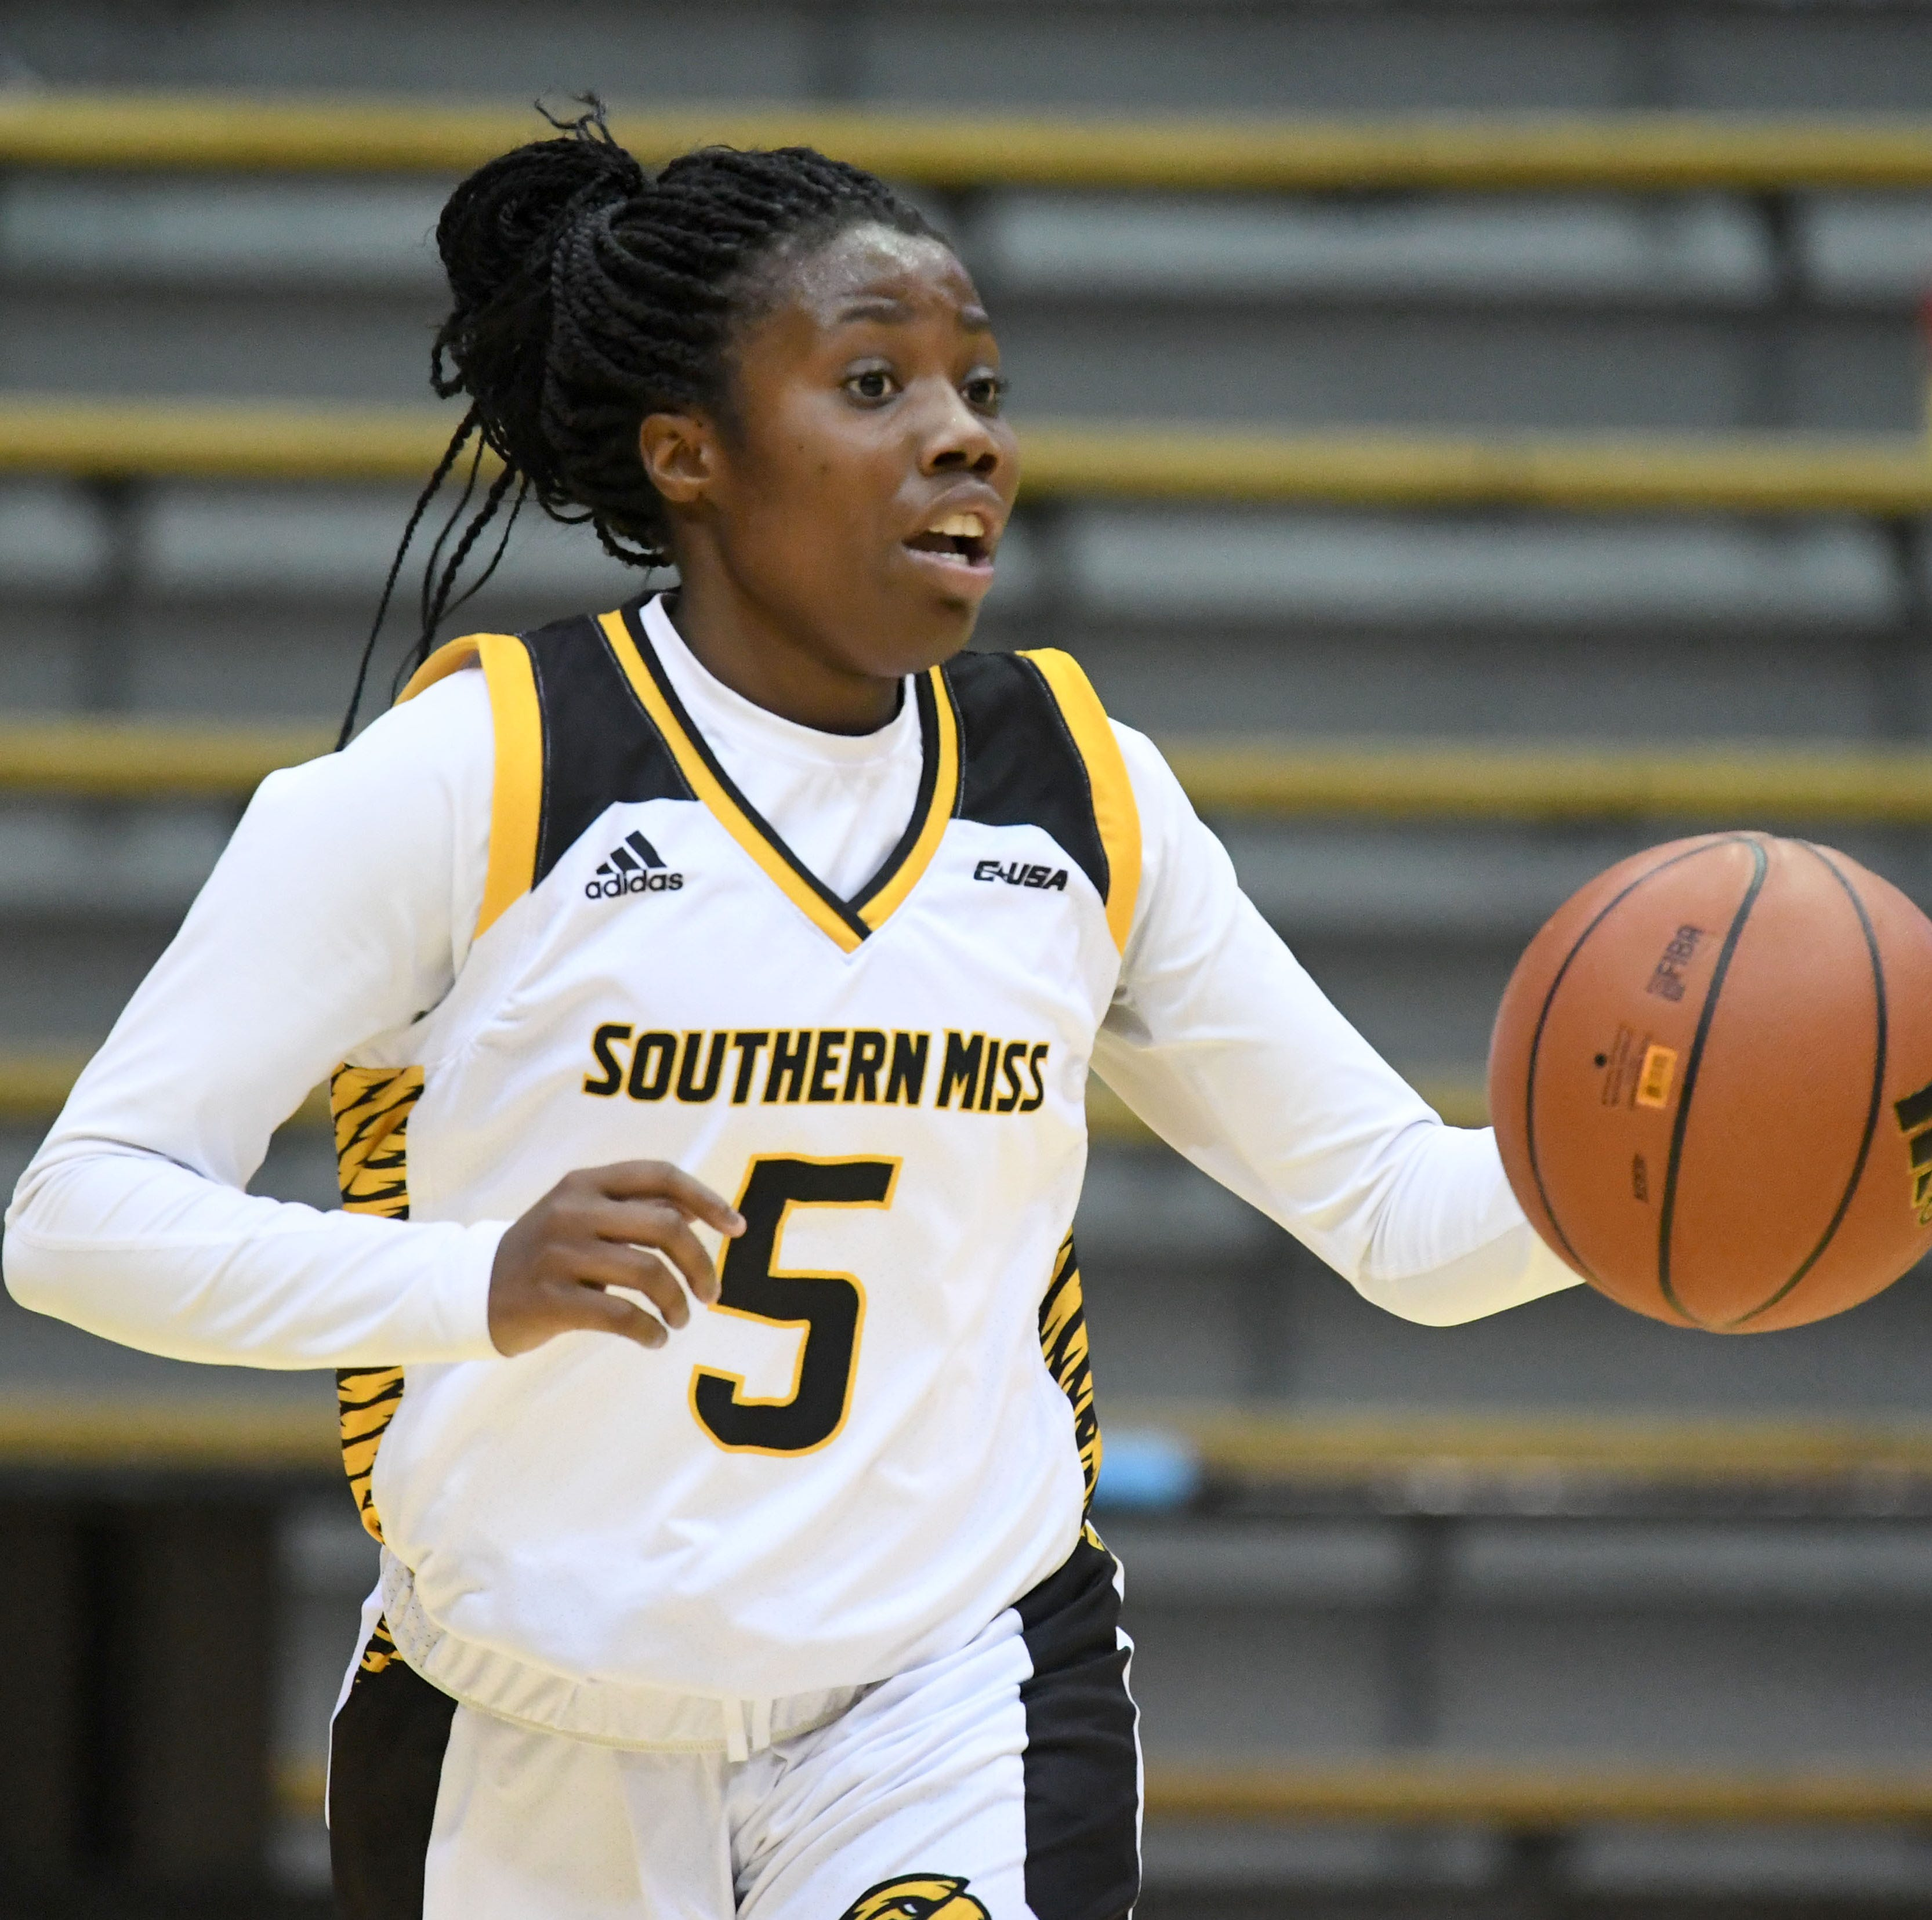 Southern Miss women hold off Nicholls to advance to second round in WBI